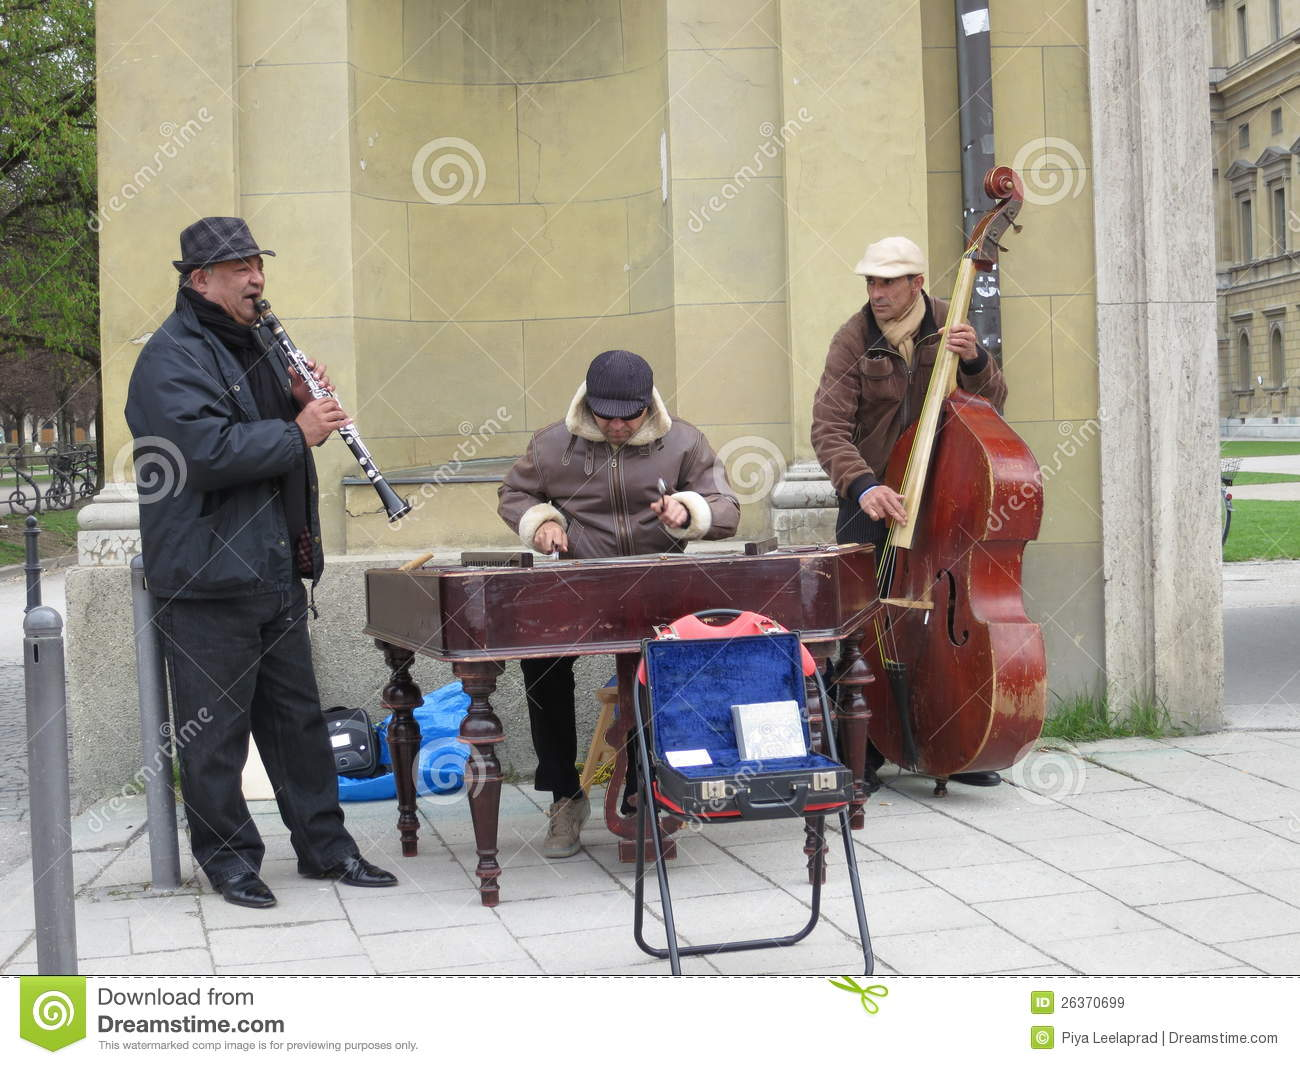 Local Street Musicians in Munich